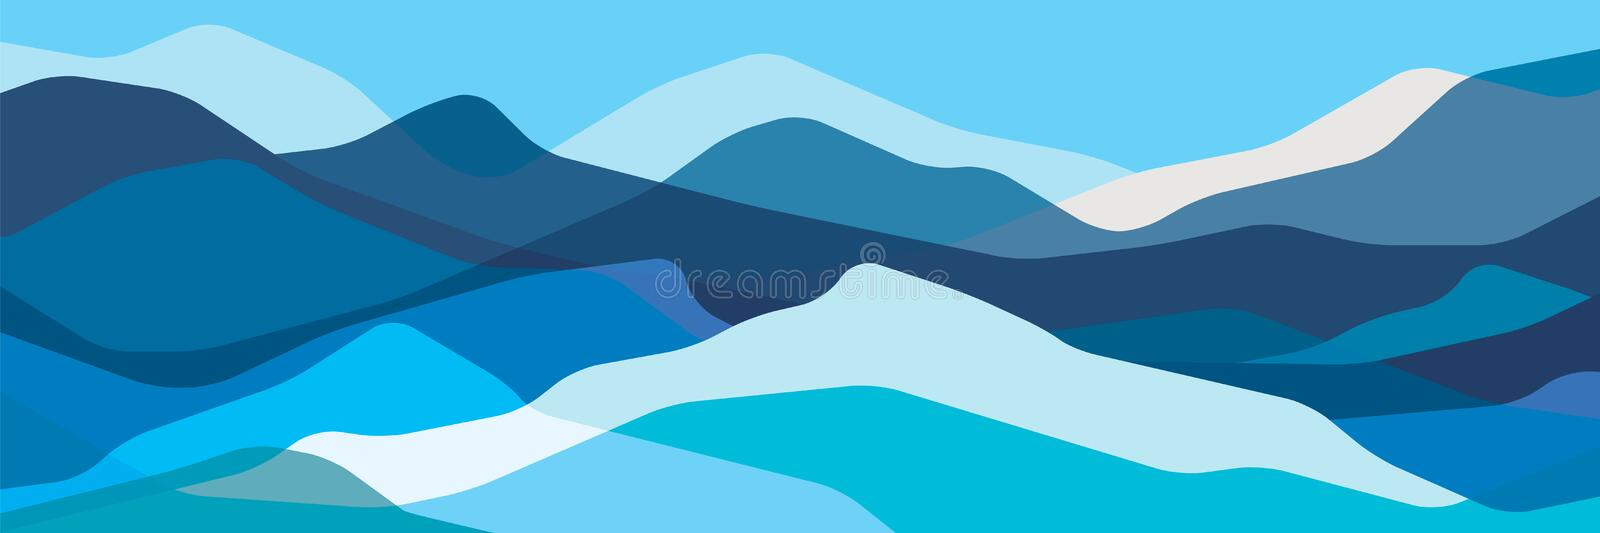 Colorez les montagnes, vagues translucides, formes en verre abstraites, le fond moderne, illustration de conception de vecteur po illustration libre de droits